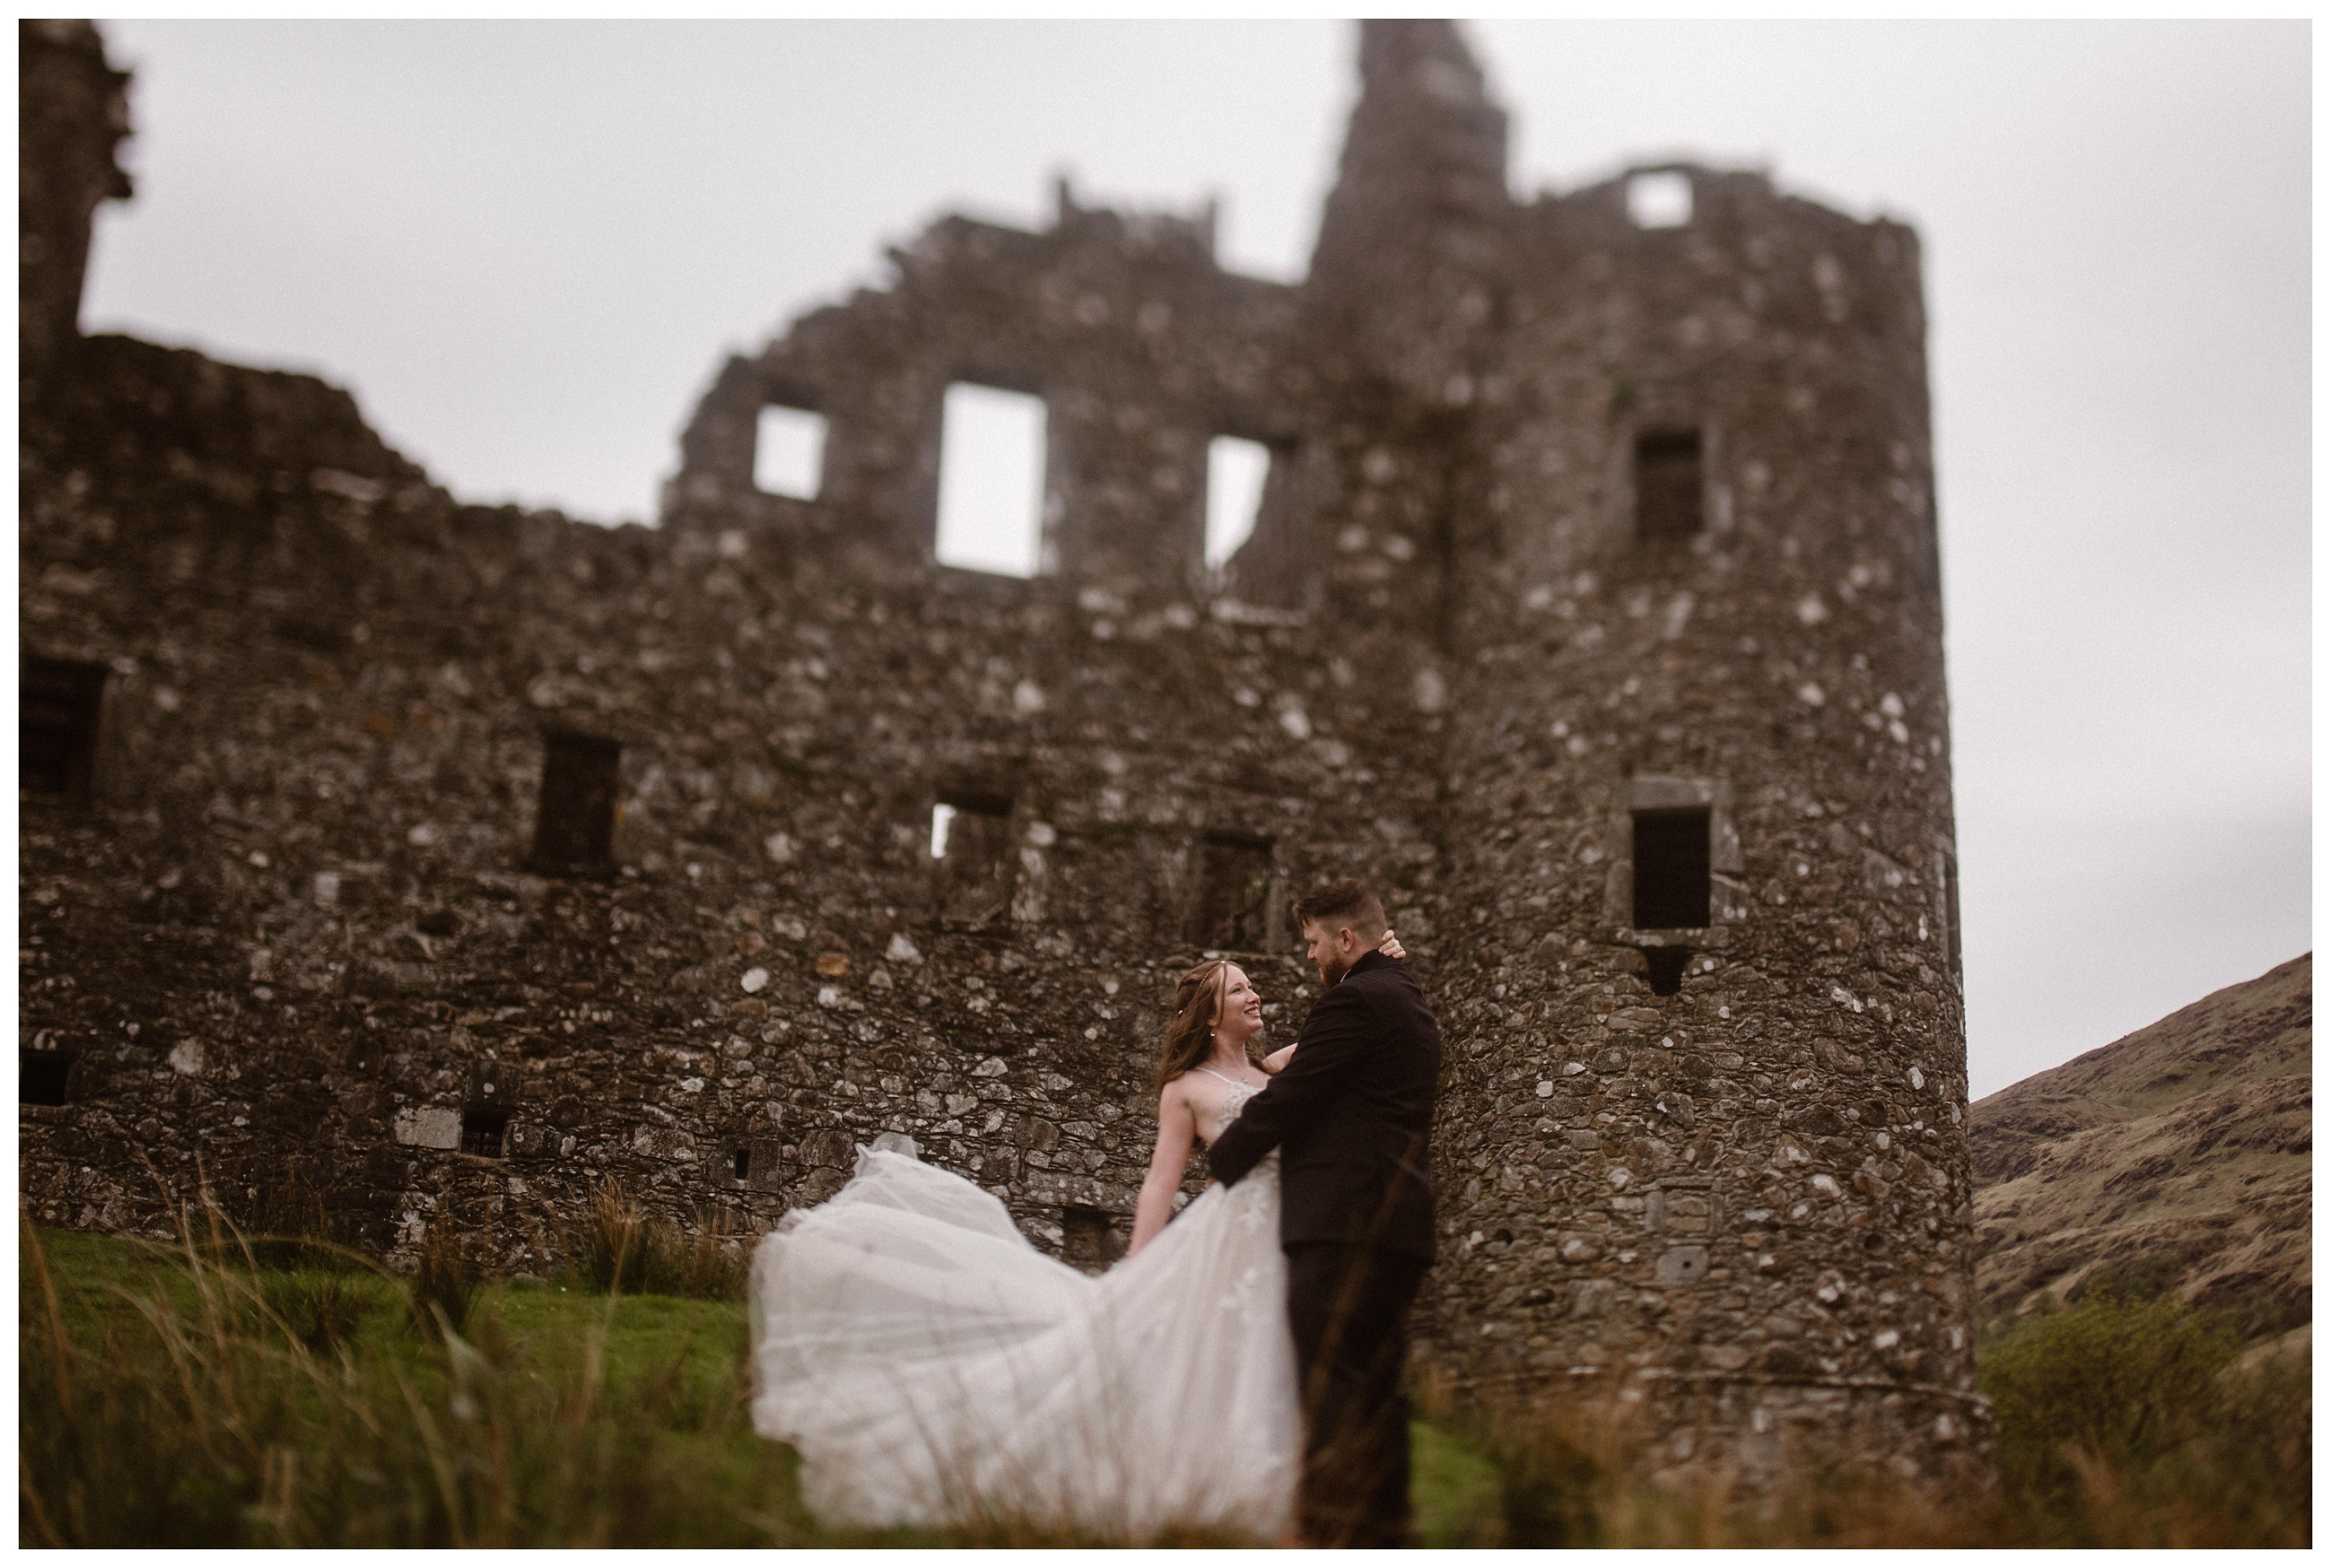 Elissa's light lace gown flows in the wind of the Scottish Highlands as she stands outside Kilchurn Castle. Photo by Maddie Mae, Adventure Instead.